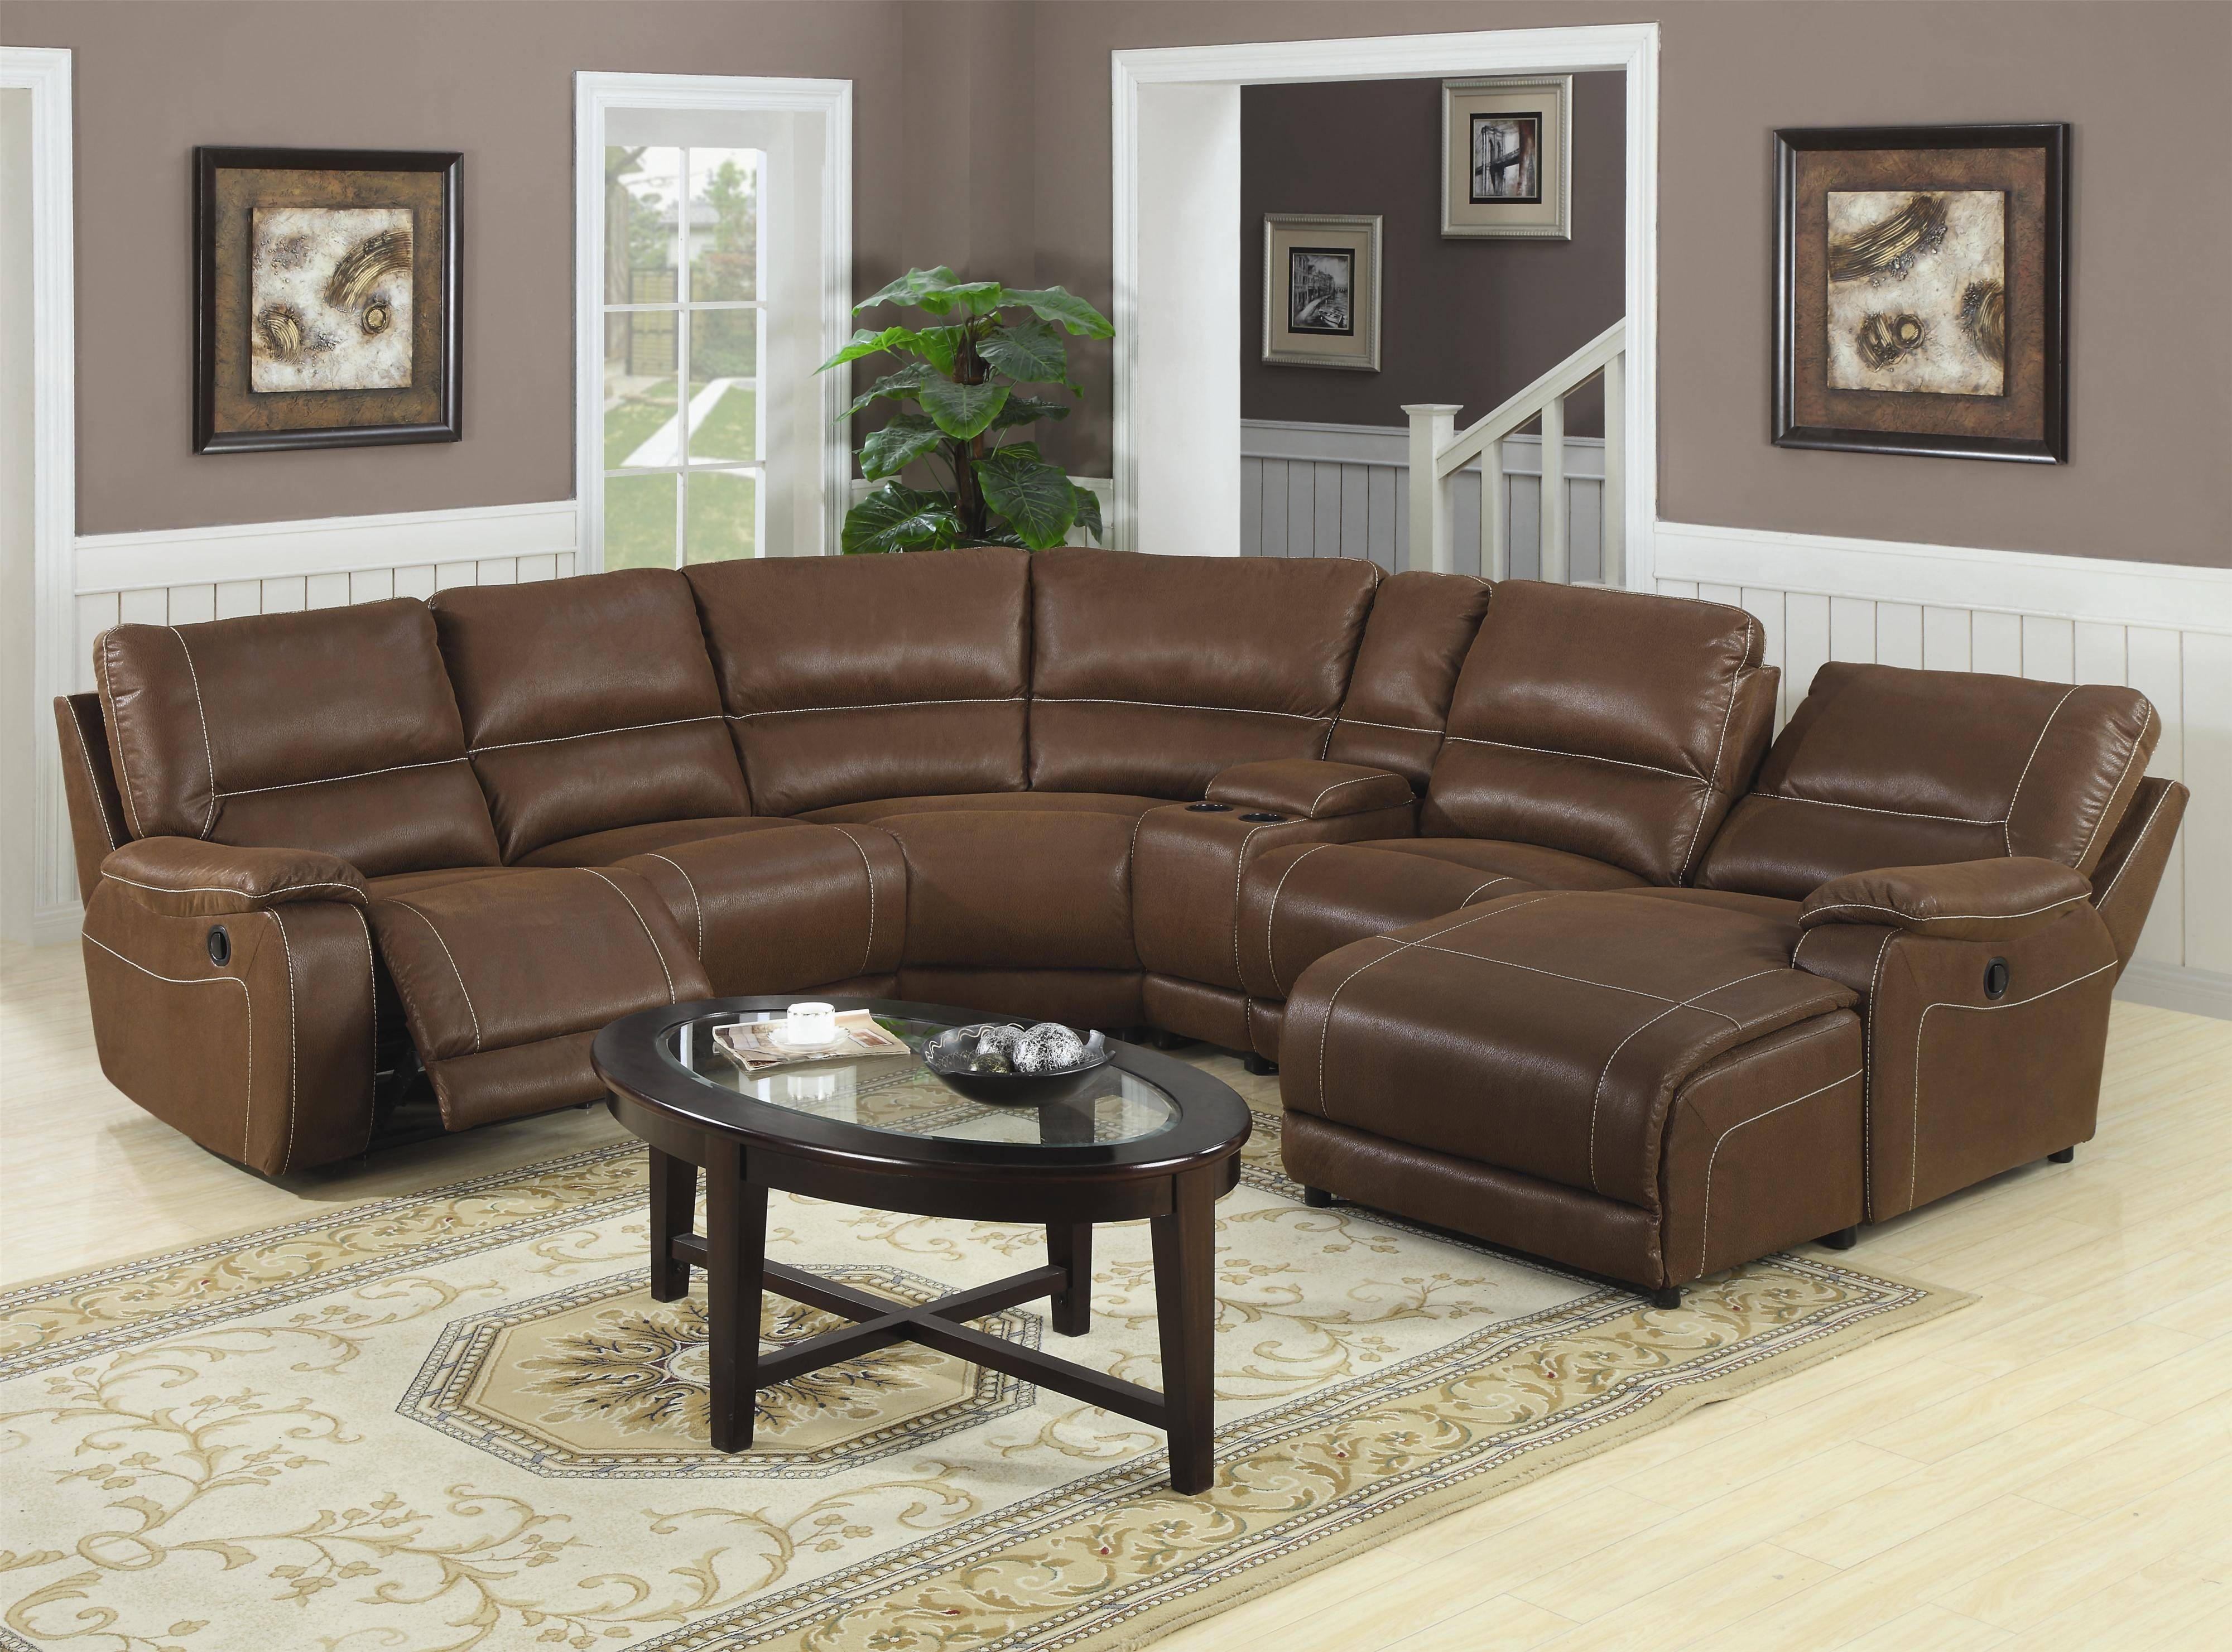 Furniture: Incredible Style Sectional Reclining Sofas For Your for Sectional Sofas for Small Spaces With Recliners (Image 9 of 30)